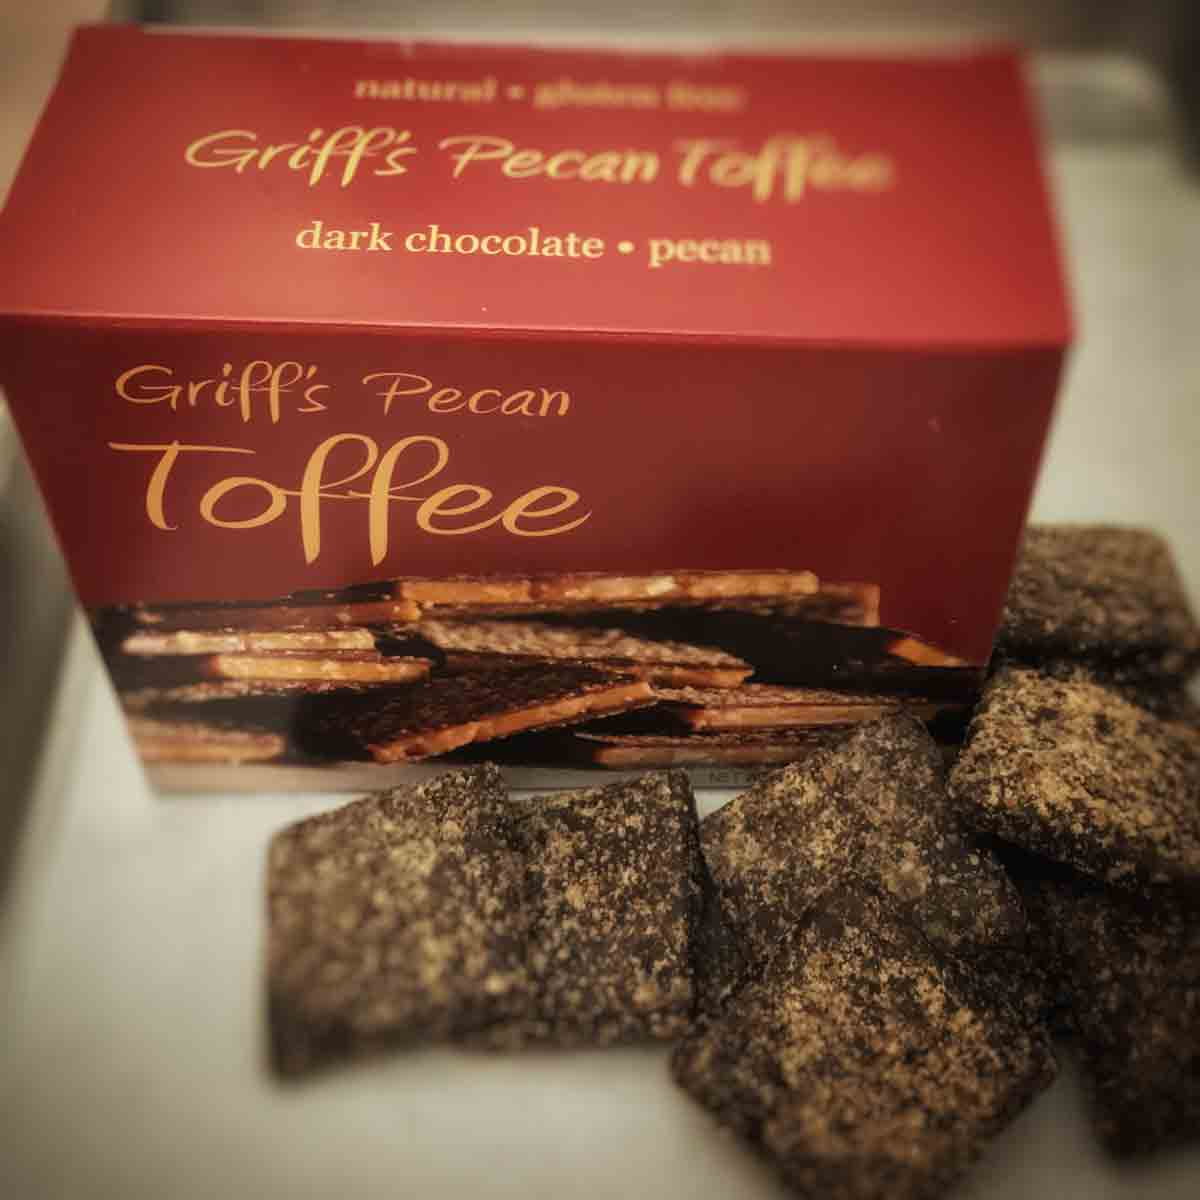 Griff's Pecan Toffee